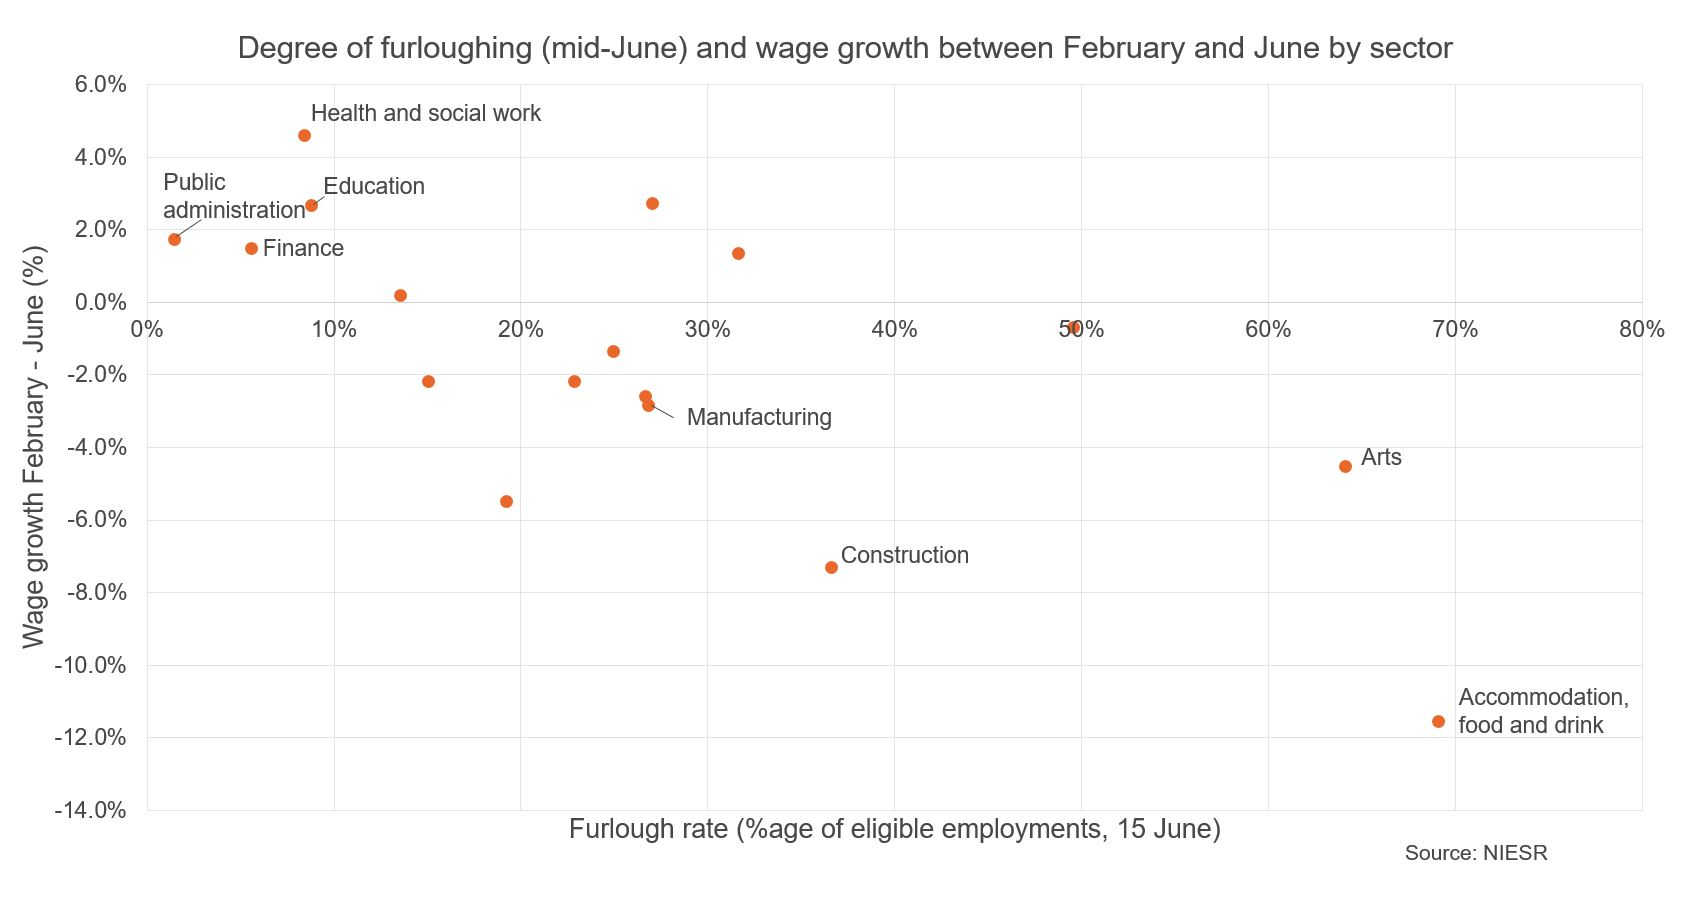 Figure showing degree of furloughing & wage growth